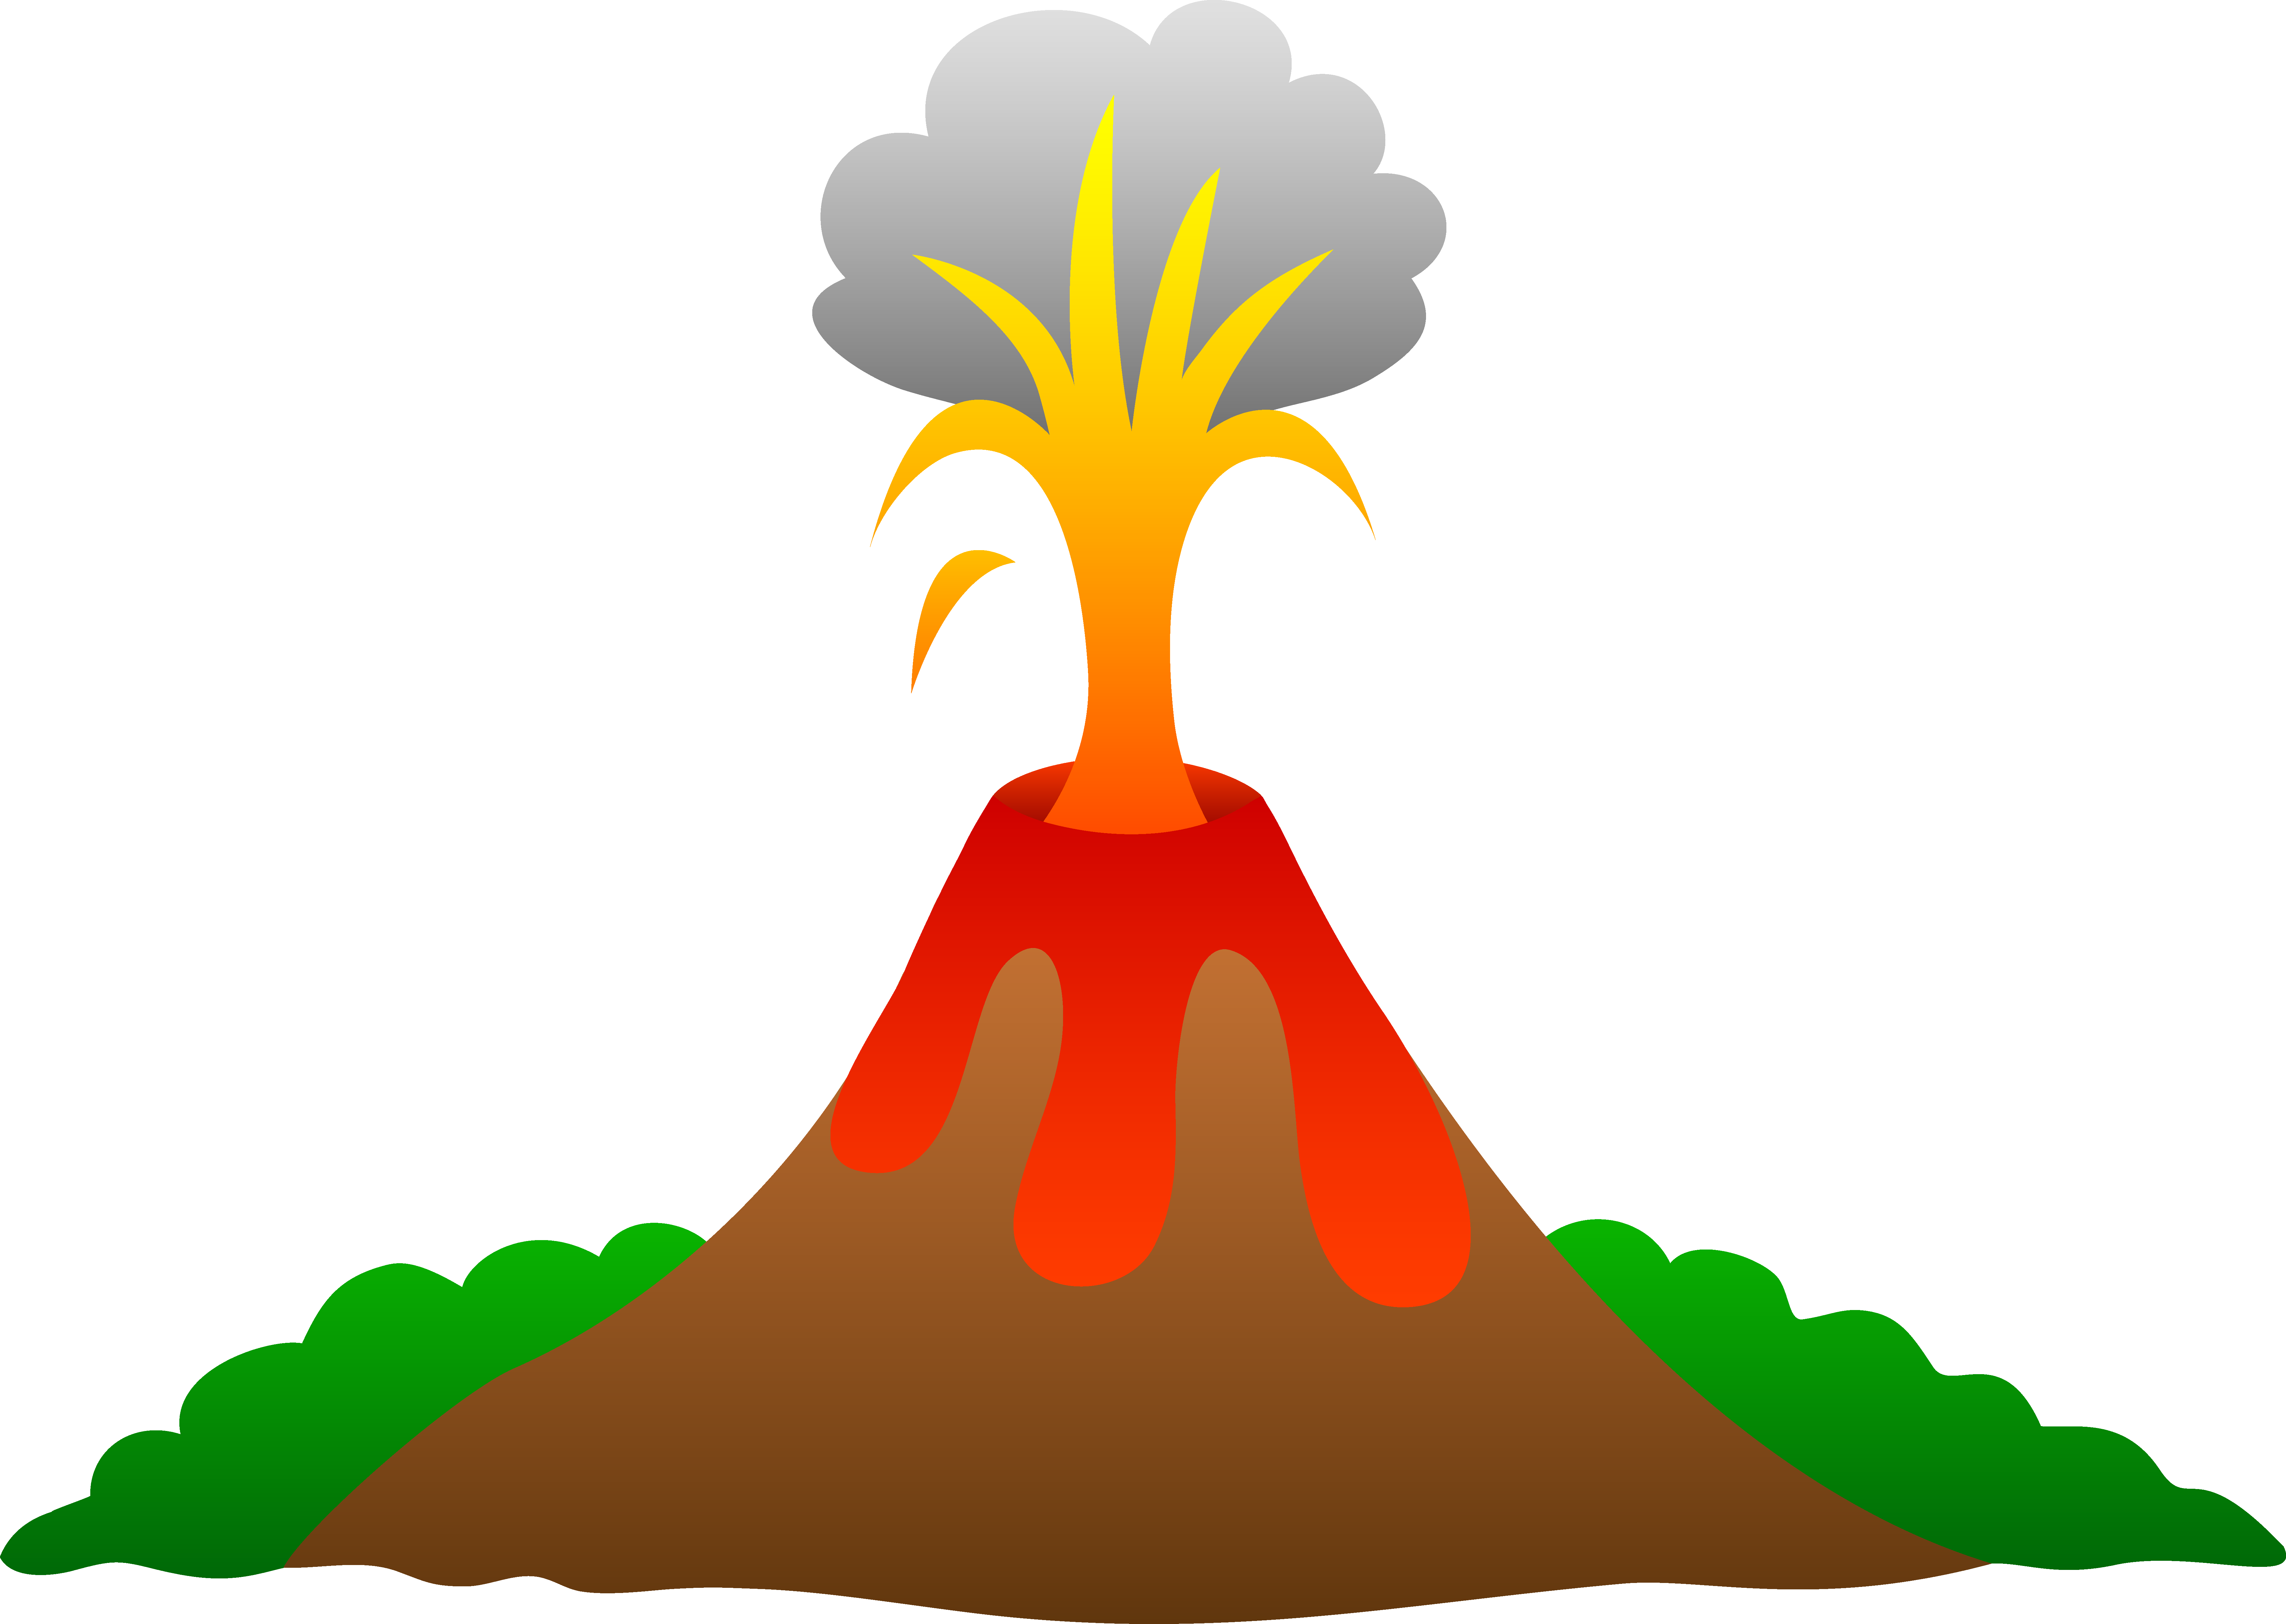 7520x5343 Volcano Erupting With Lava